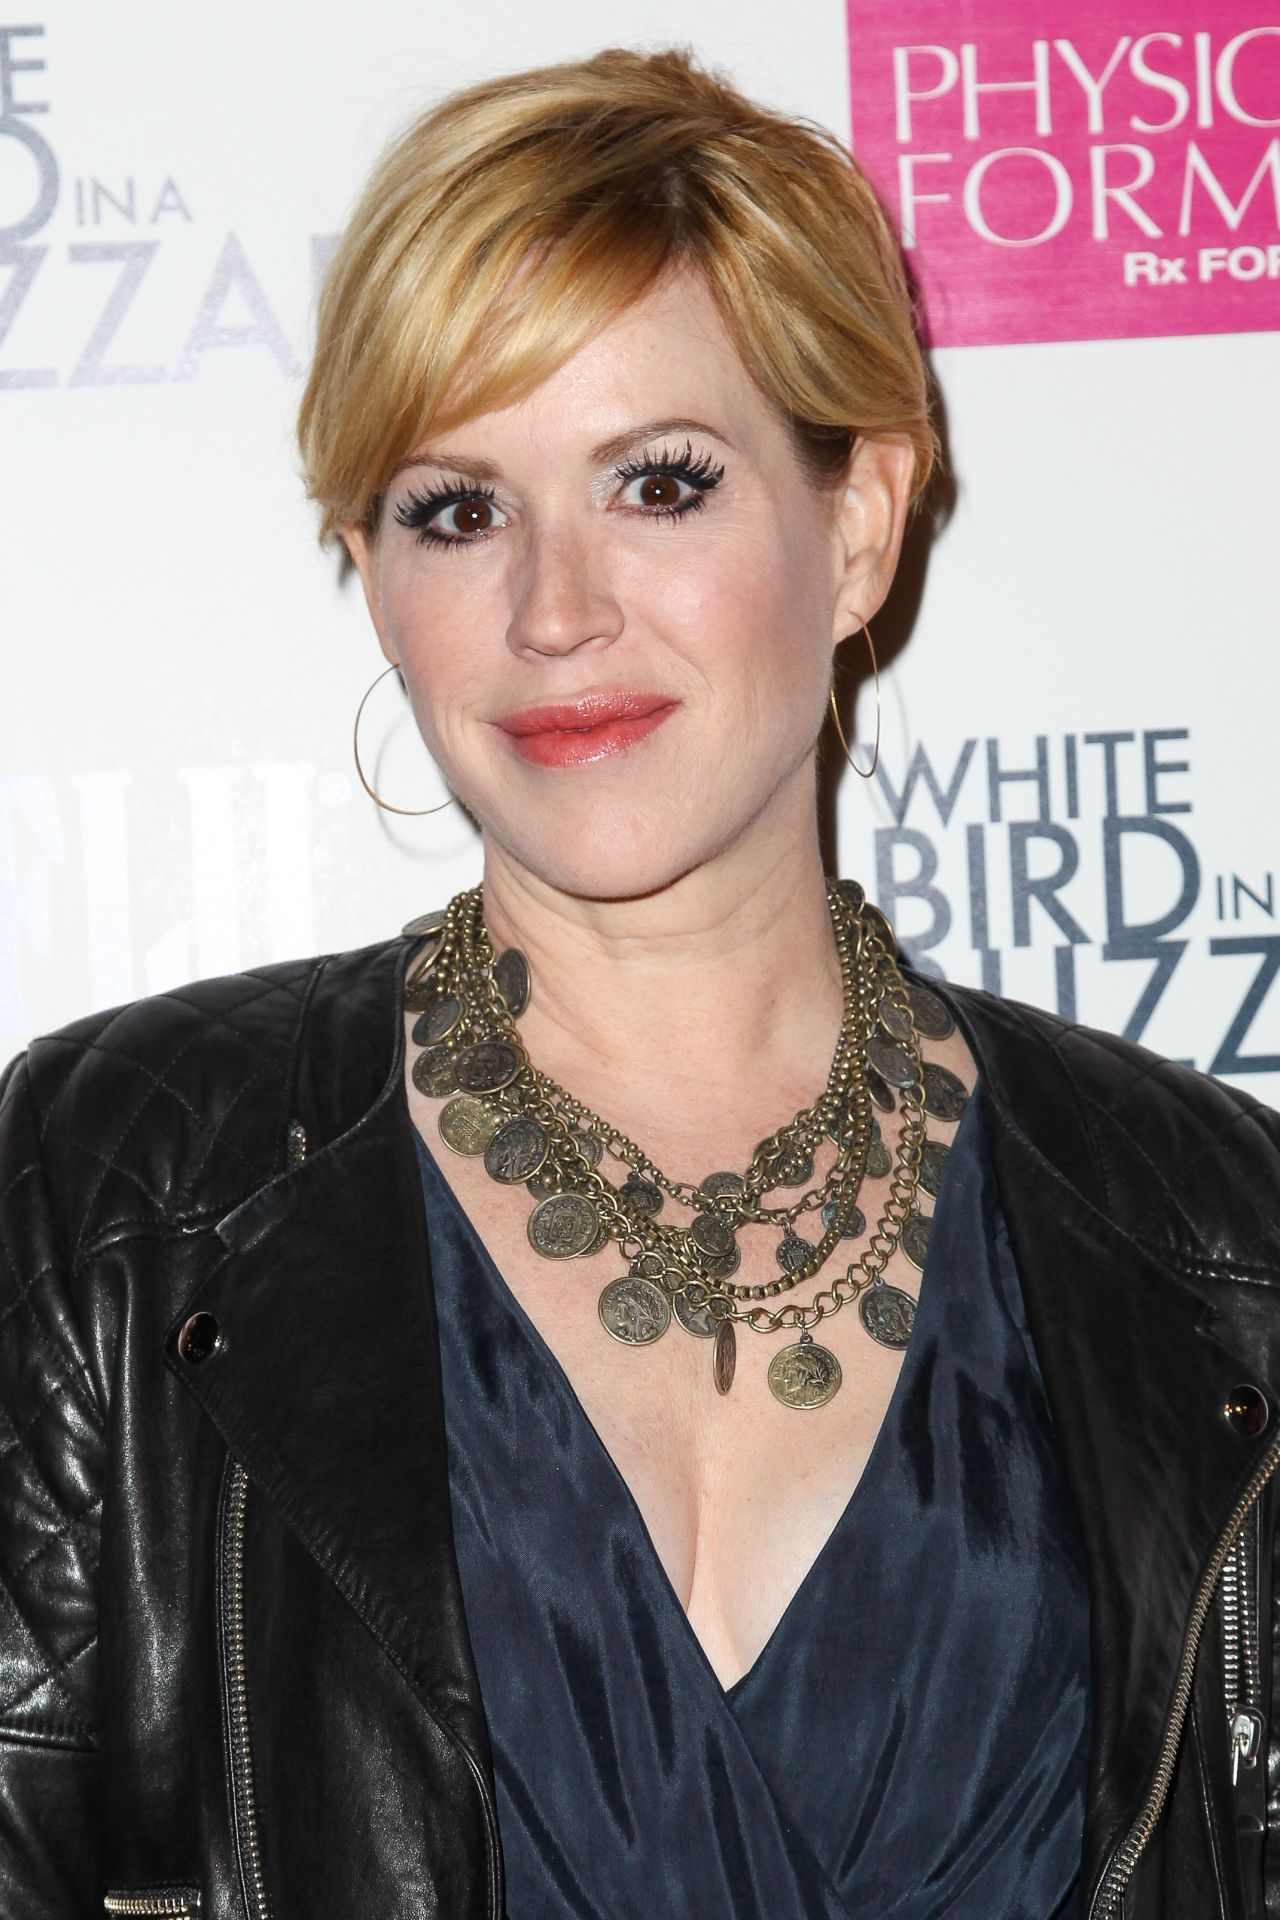 Molly Ringwald White Bird In A Blizzard Premiere In